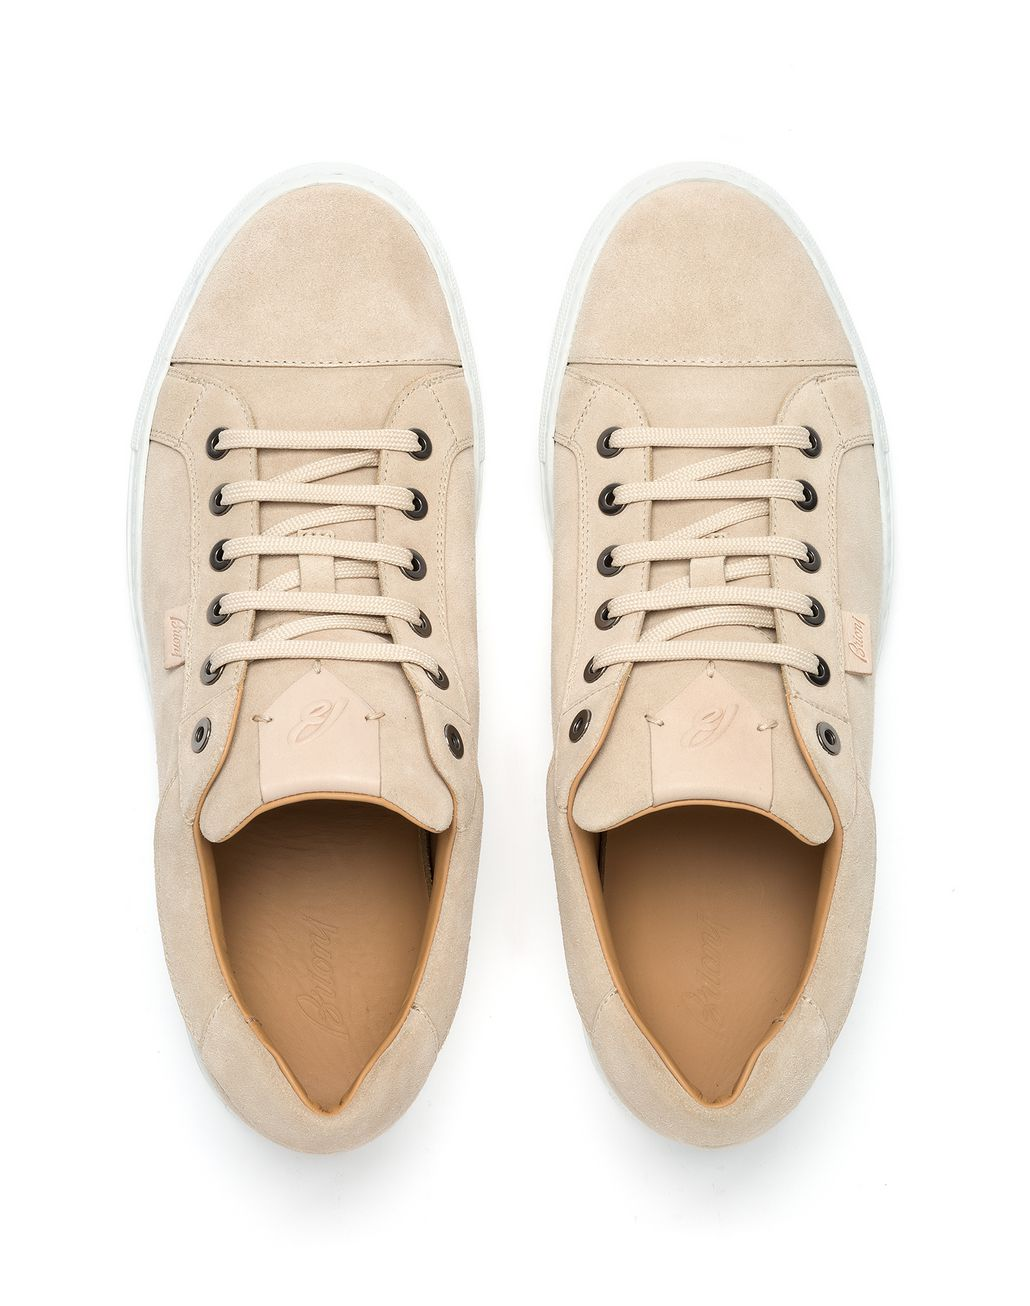 BRIONI Ivory Calfskin Suede Sneaker Sneakers [*** pickupInStoreShippingNotGuaranteed_info ***] r